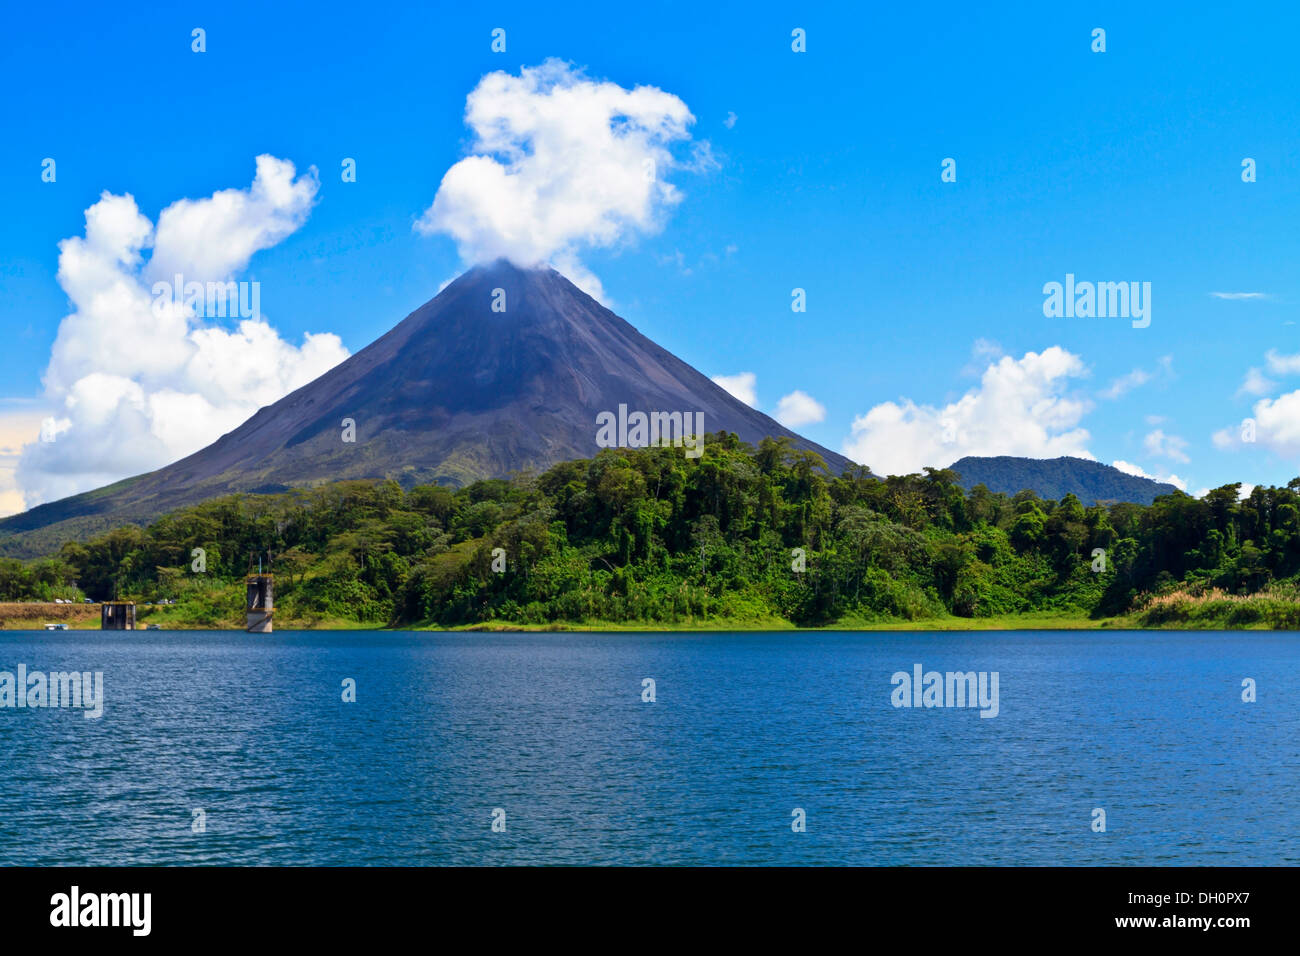 Arenal Volcano 'puffs' out a cloud above the rainforest on the shores of Lake Arenal in Costa Rica - Stock Image